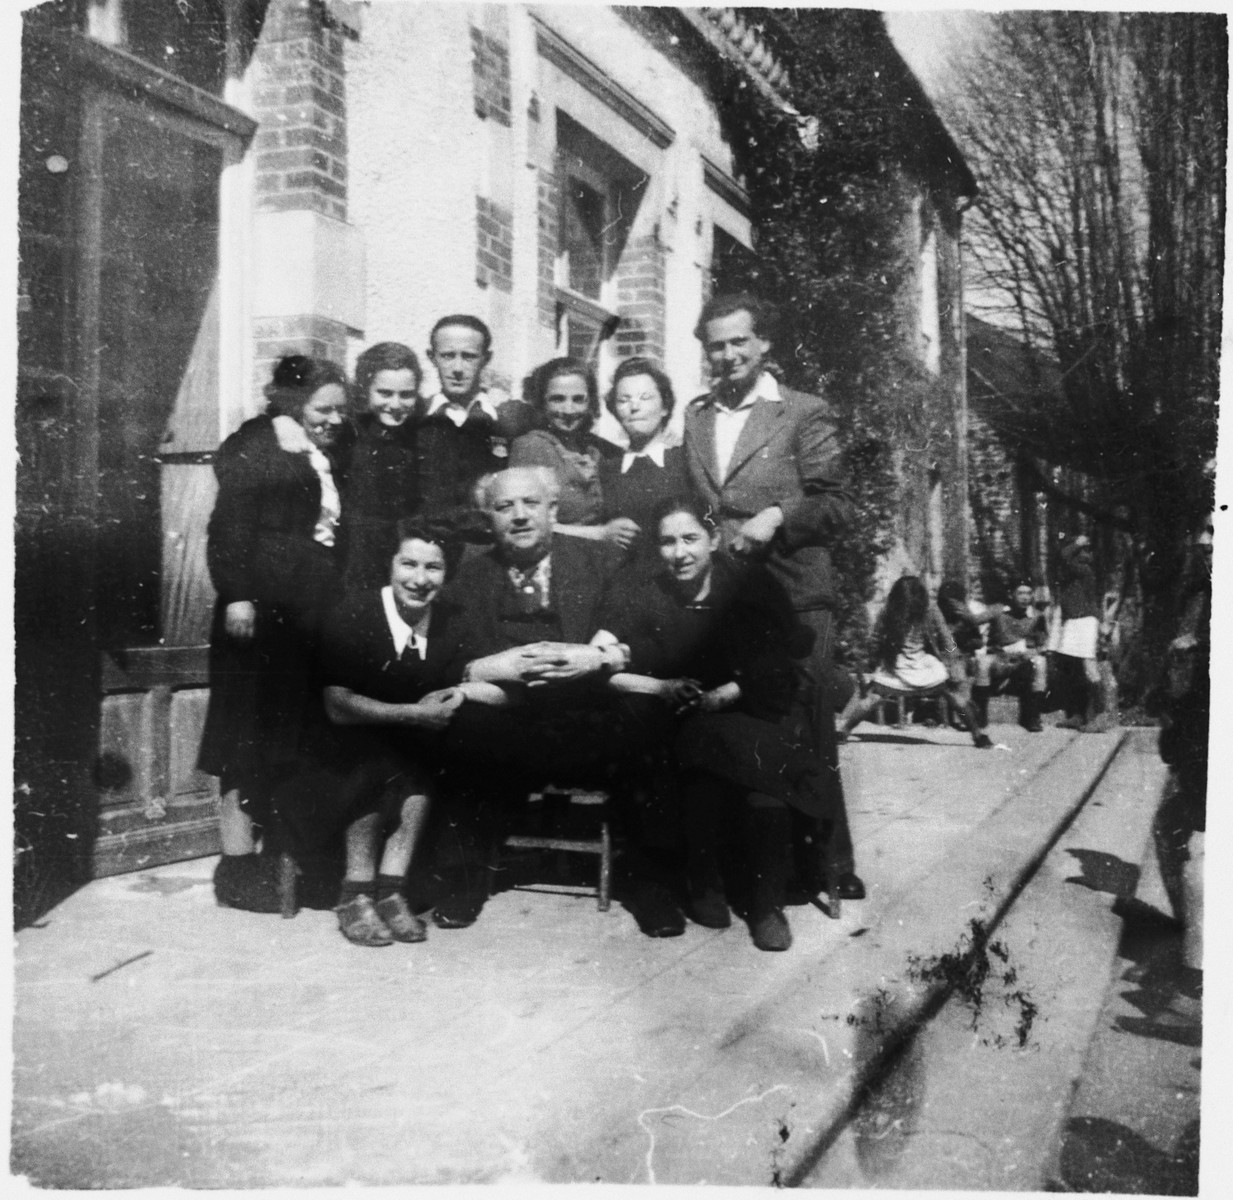 Group portrait of the staff of the Chabannes OSE [Oeuvre de Secours aux Enfants] children's home.   Standing from left to right are: Gita, Milia, Dr. Meiseles, Ida, Herta and Simon.  Seated are Rachel, Felix Chevrier and Mrs. Sitzman.  Felix Chevrier was honored as Righteous Among the Nations in 1999.